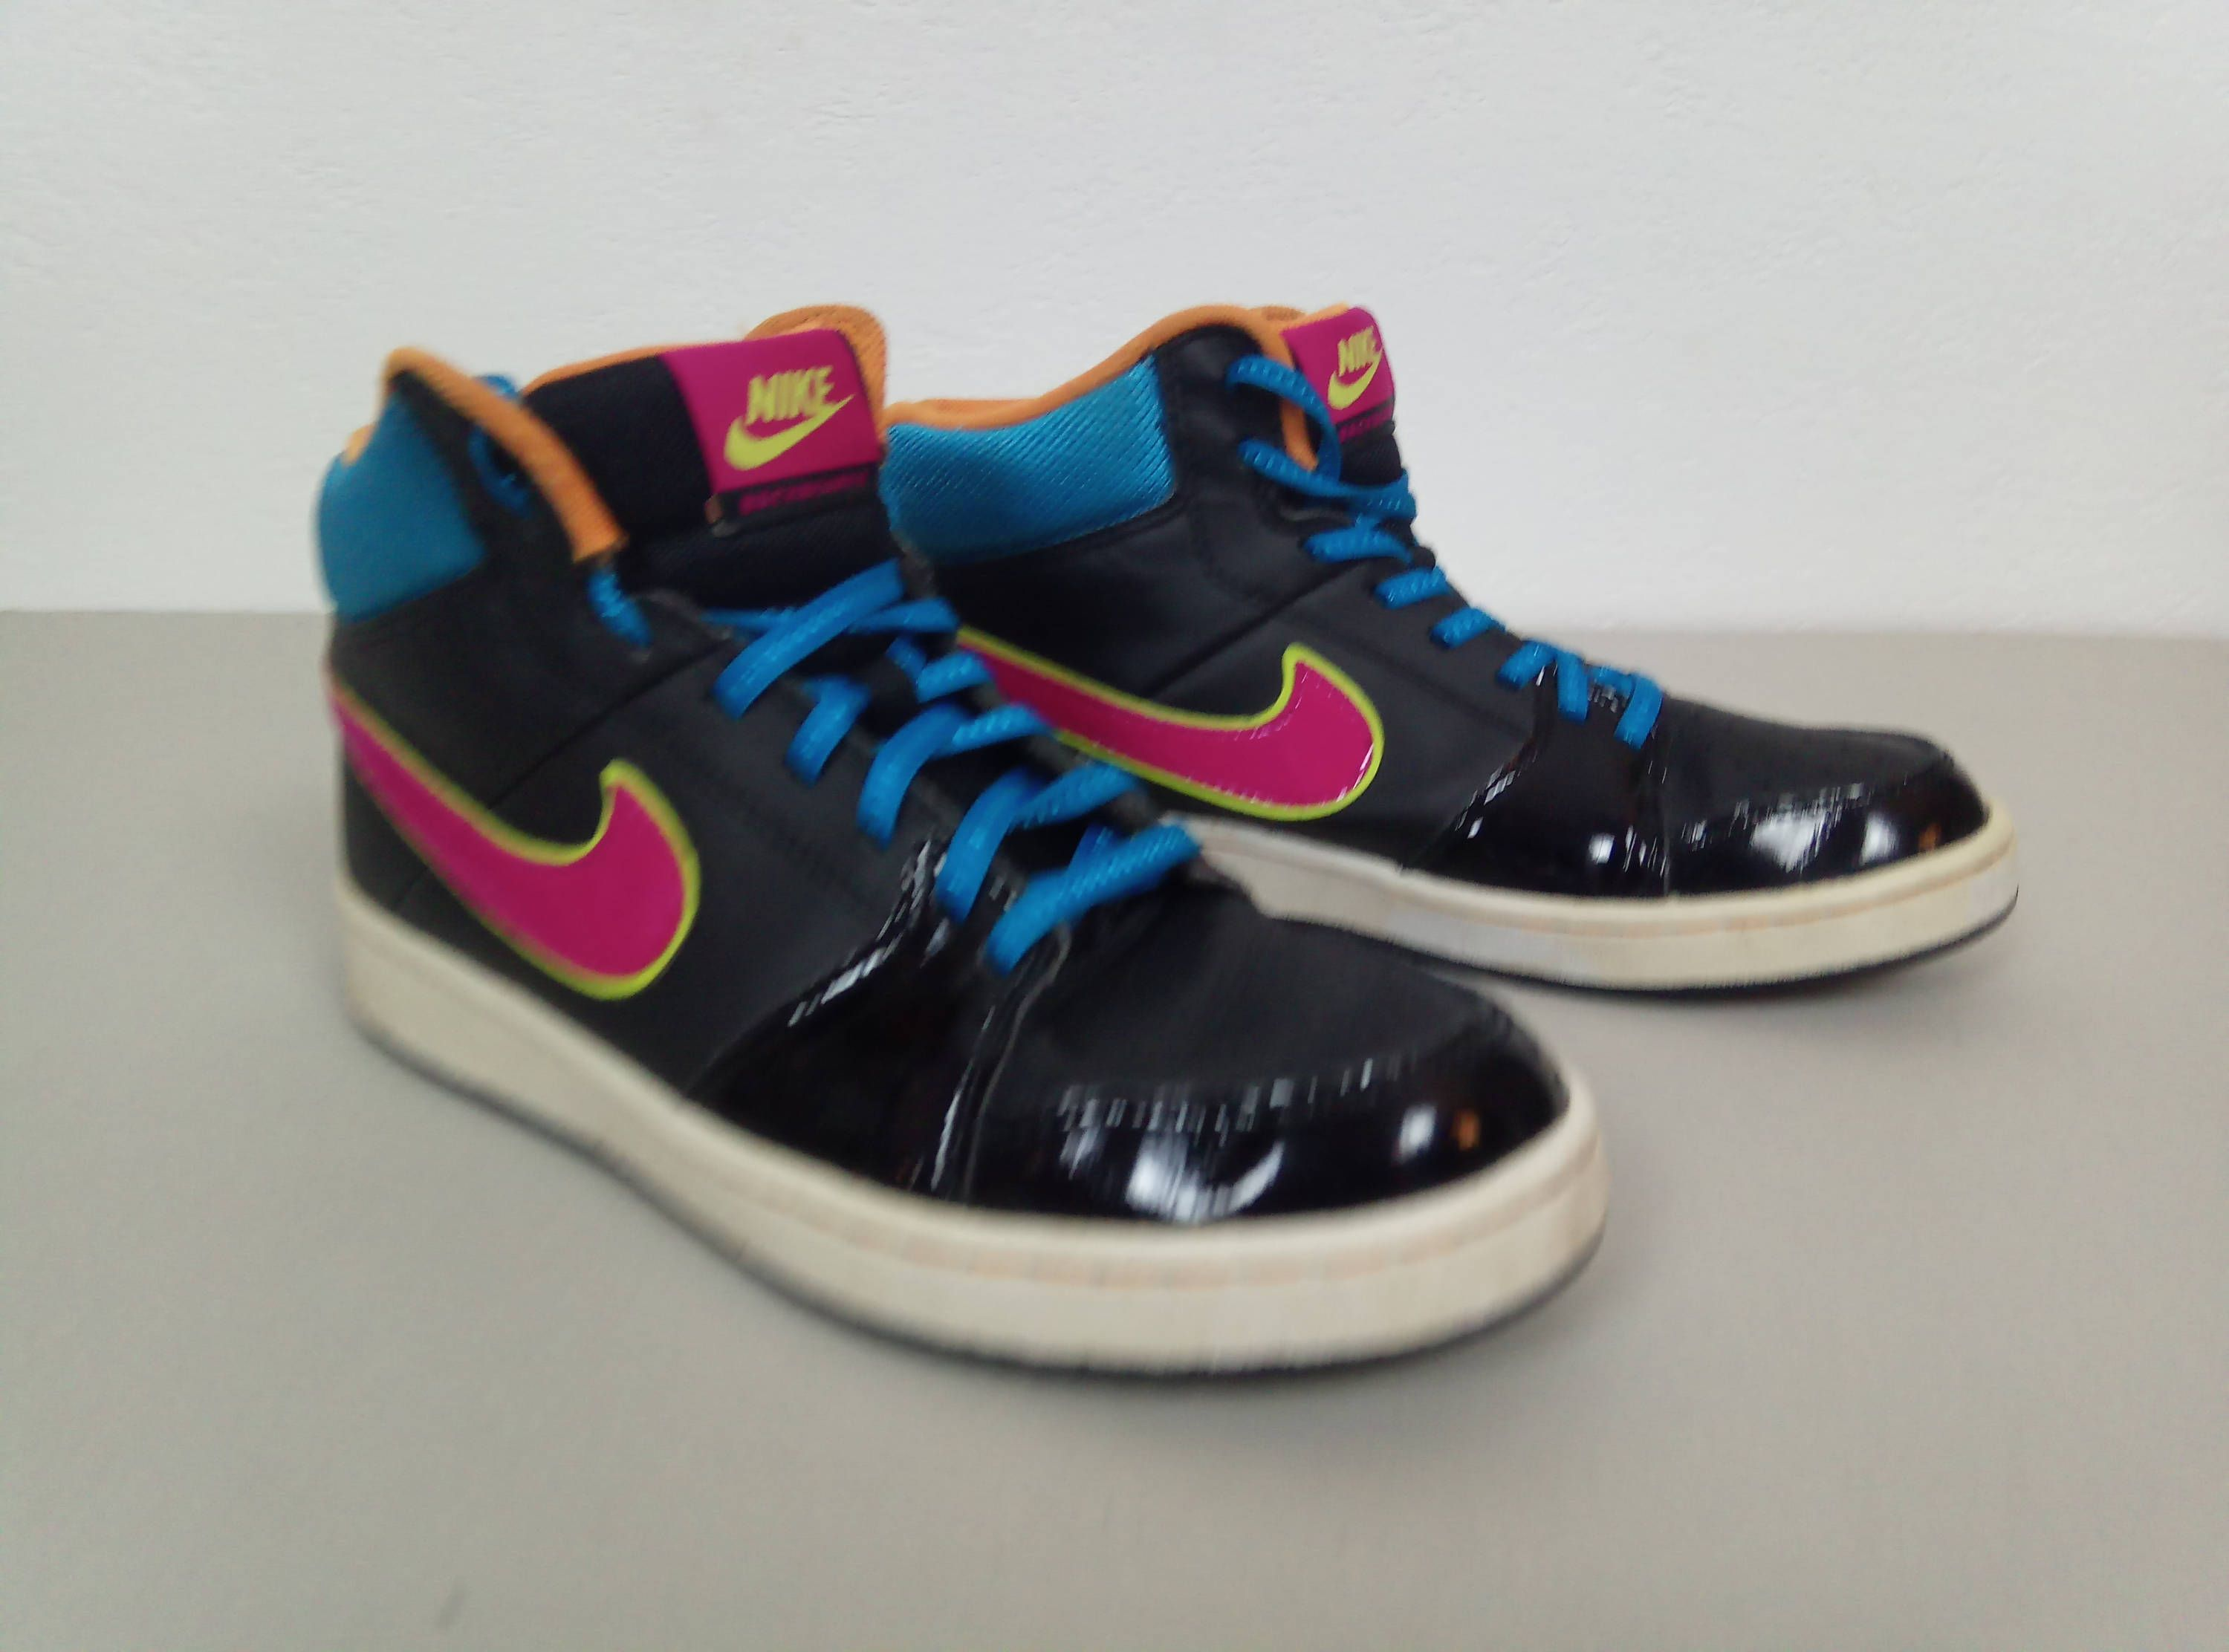 d5691 3de00 black nike shoes size 4 etsy.com new lower prices ... cce0f42a9